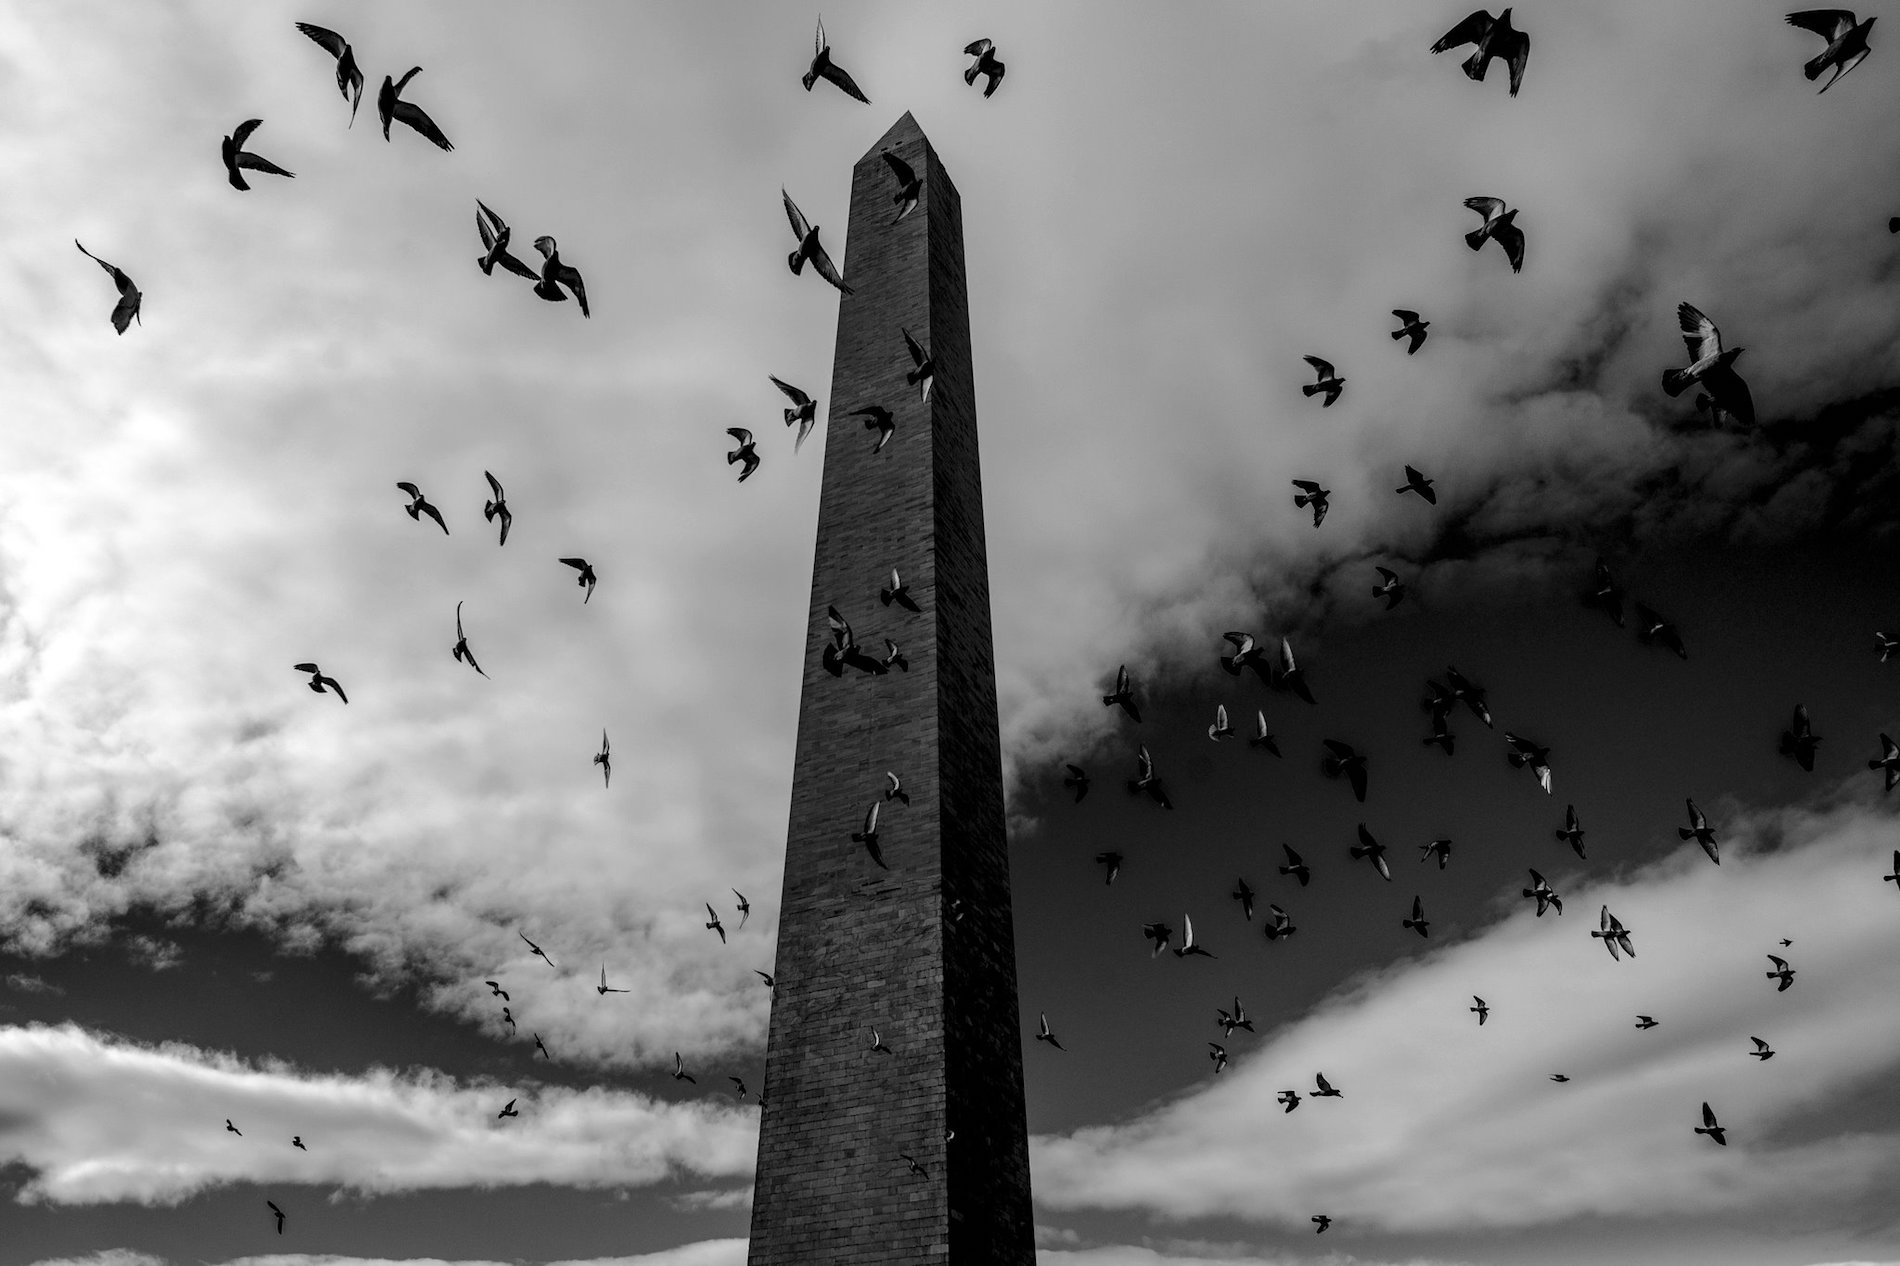 Black & white photo of pigeons flocking around Washington Monument